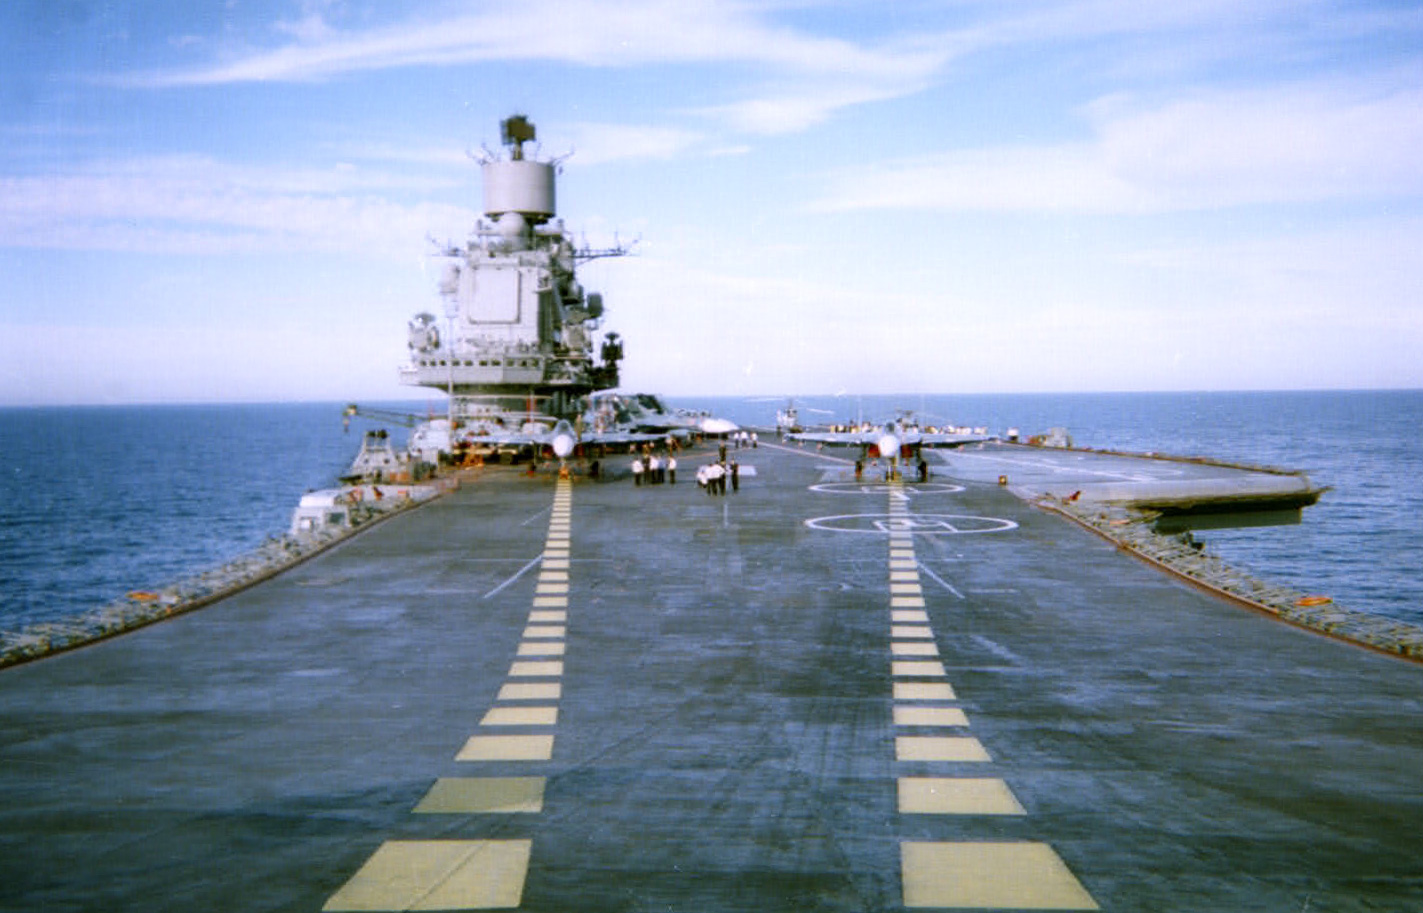 http://upload.wikimedia.org/wikipedia/commons/c/cb/Kuznetsov_960111-N-9085M-002.jpg